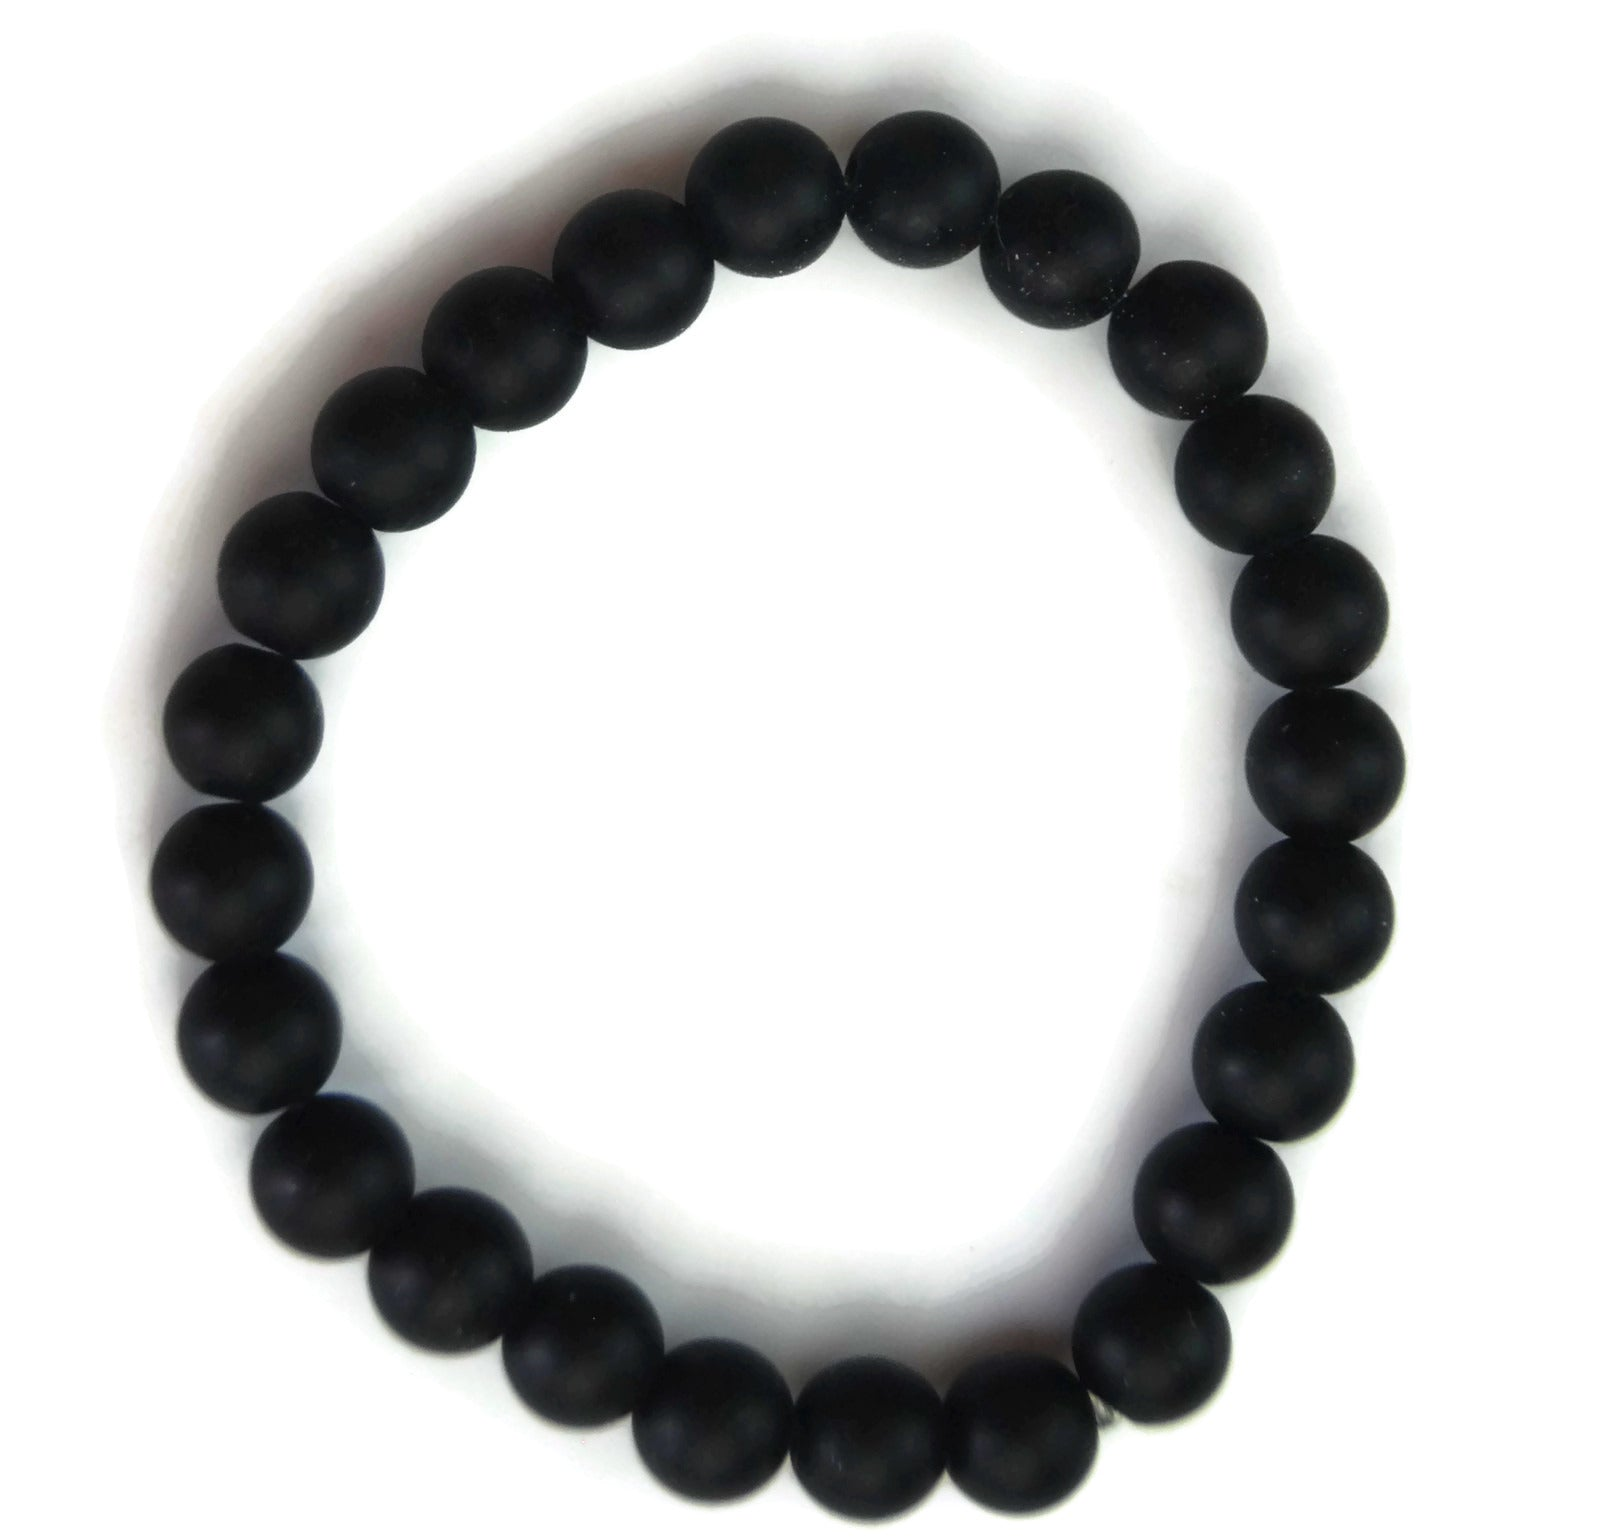 Lotus Line Matte Black Obsidian Stone Meditation Yoga Wrist Mala Stretch Bracelet, Root Base Chakra